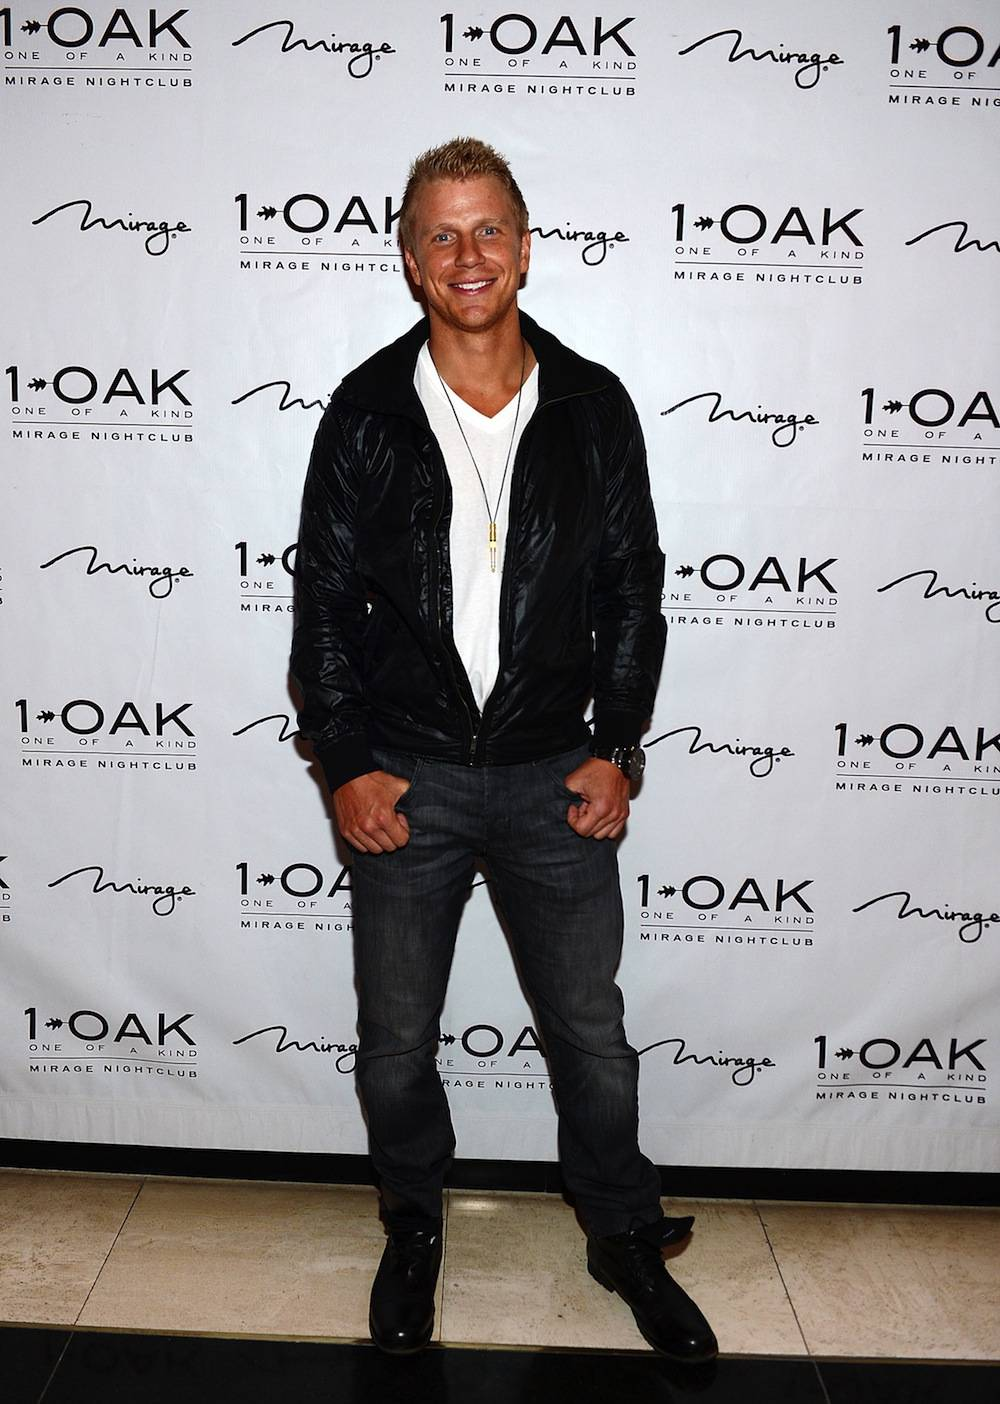 The Bachelor Star Sean Lowe At 1 OAK Nightclub At The Mirage Hotel and Casino